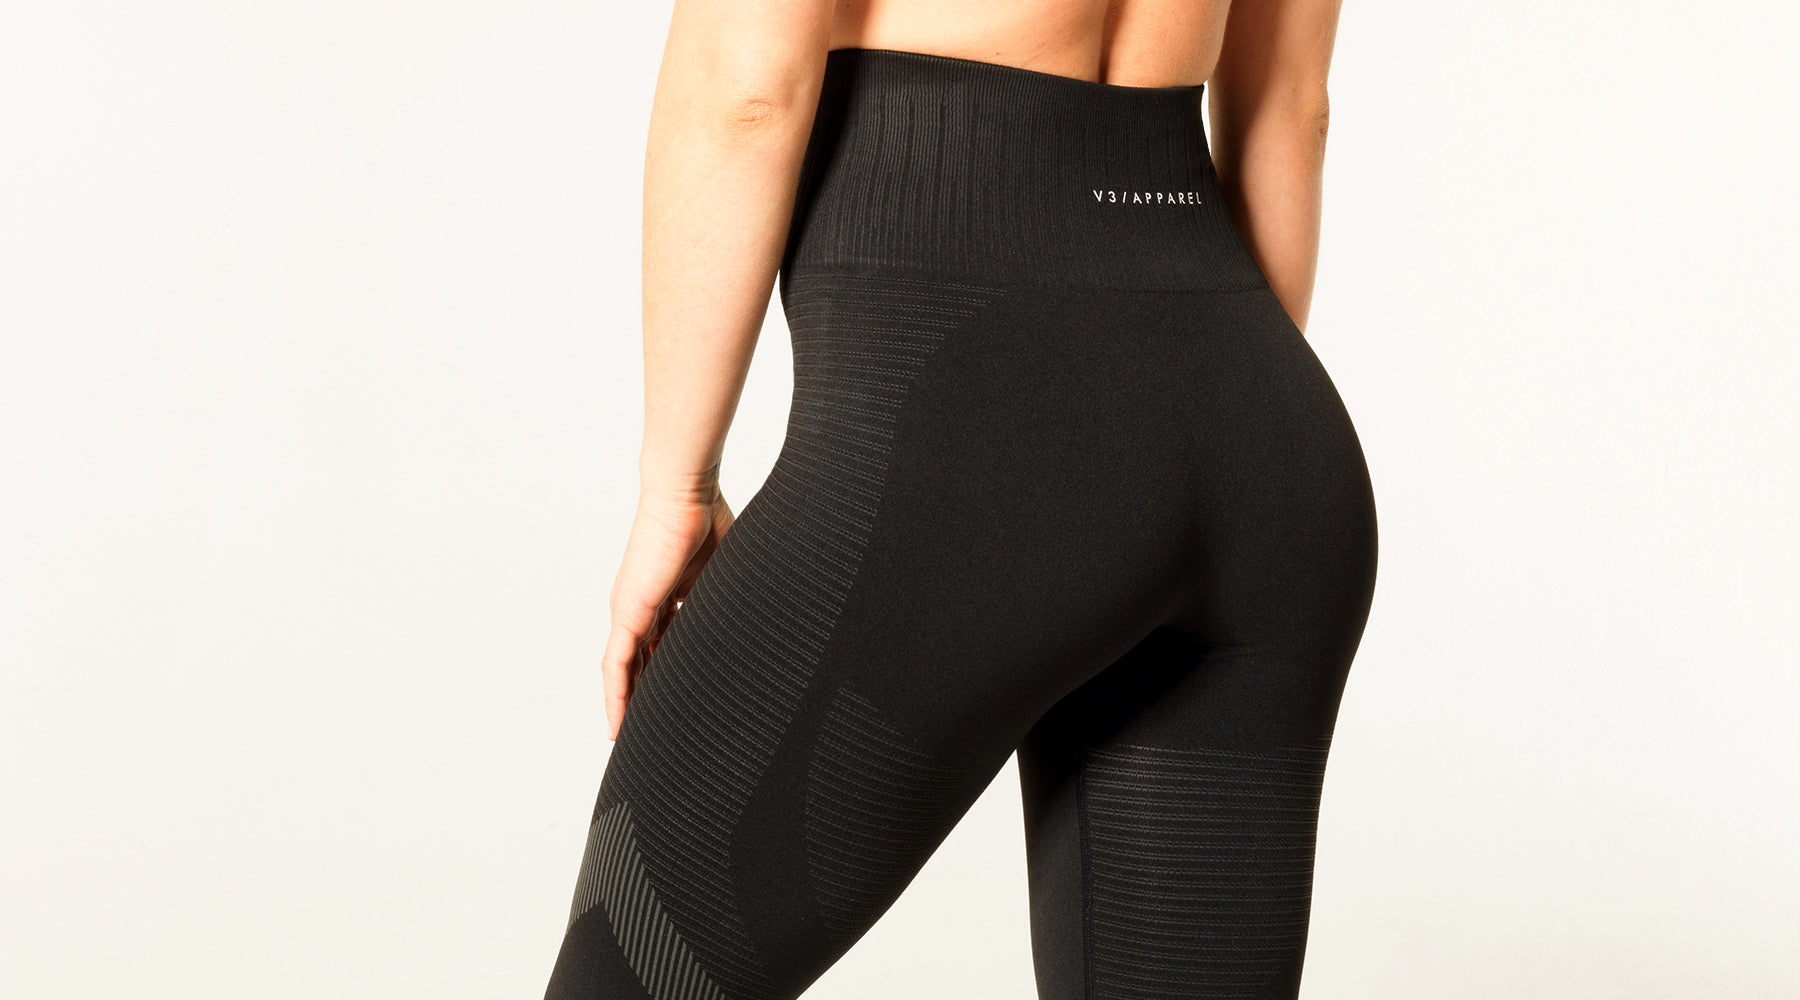 V3 Apparel seamless squat proof elevate leggings black